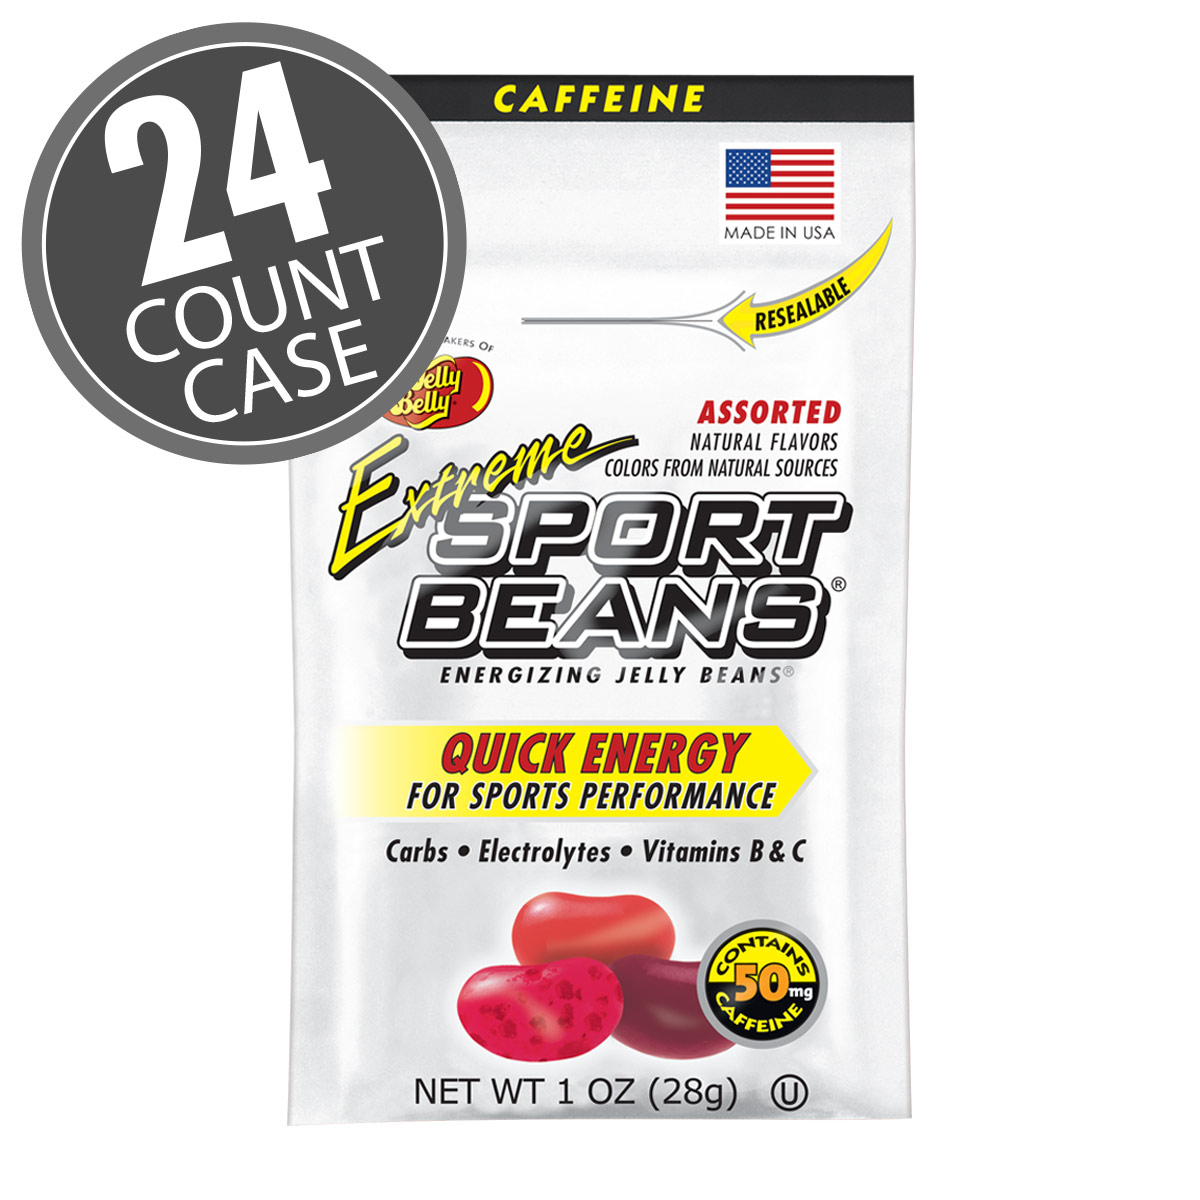 Extreme Sport Beans® Jelly Beans with CAFFEINE -  Assorted Flavors 24-Pack